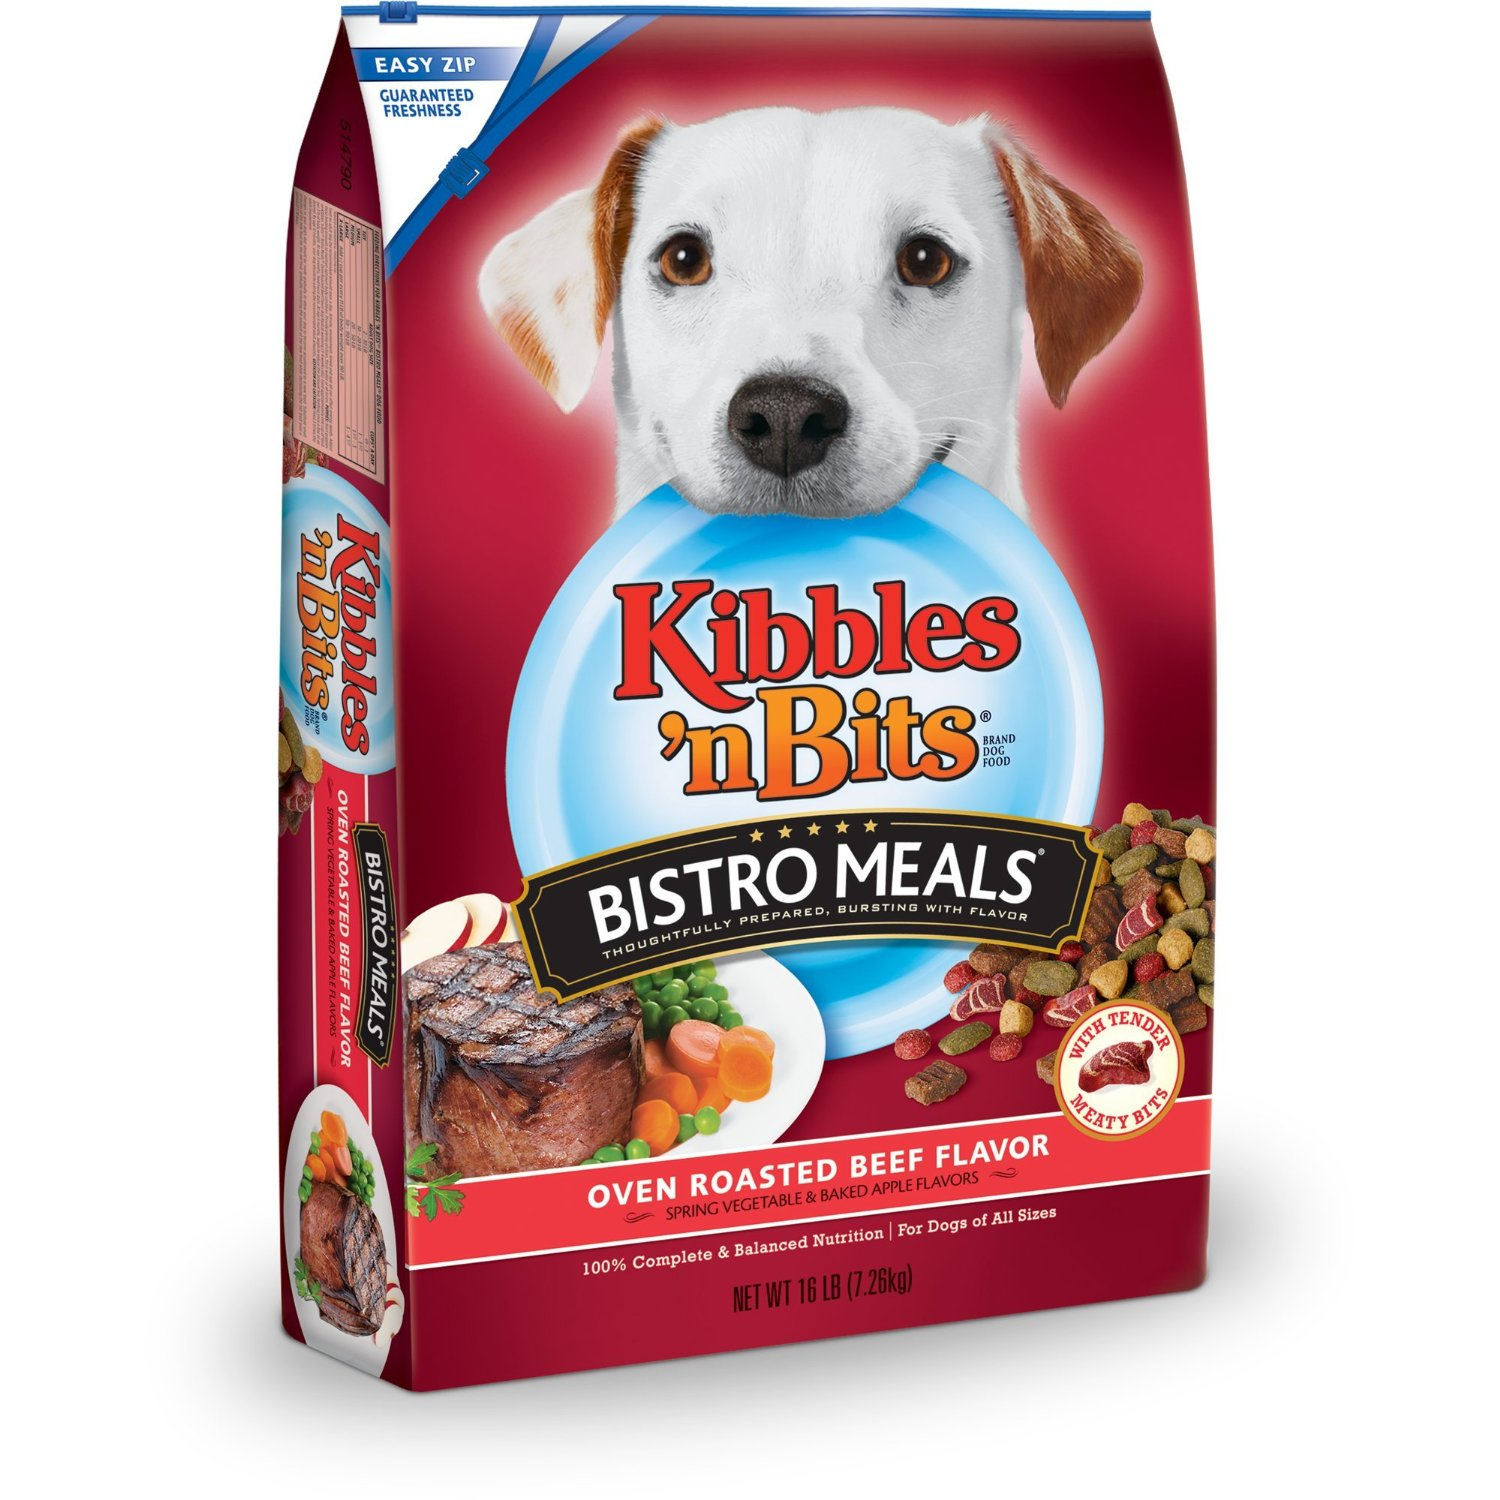 Kibbles Bits Bistro Meals Oven Roasted Beef for Dogs